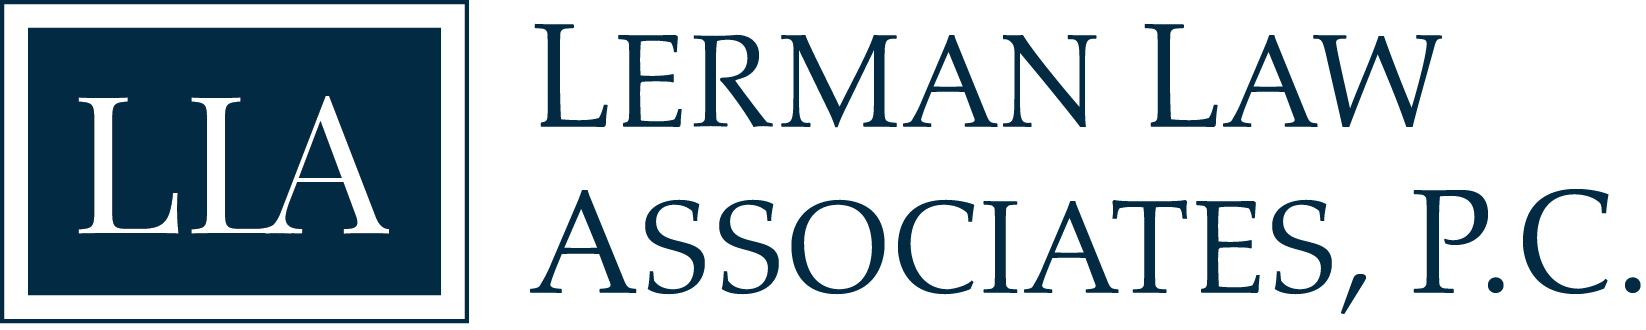 Lerman Law Associates, P.C.